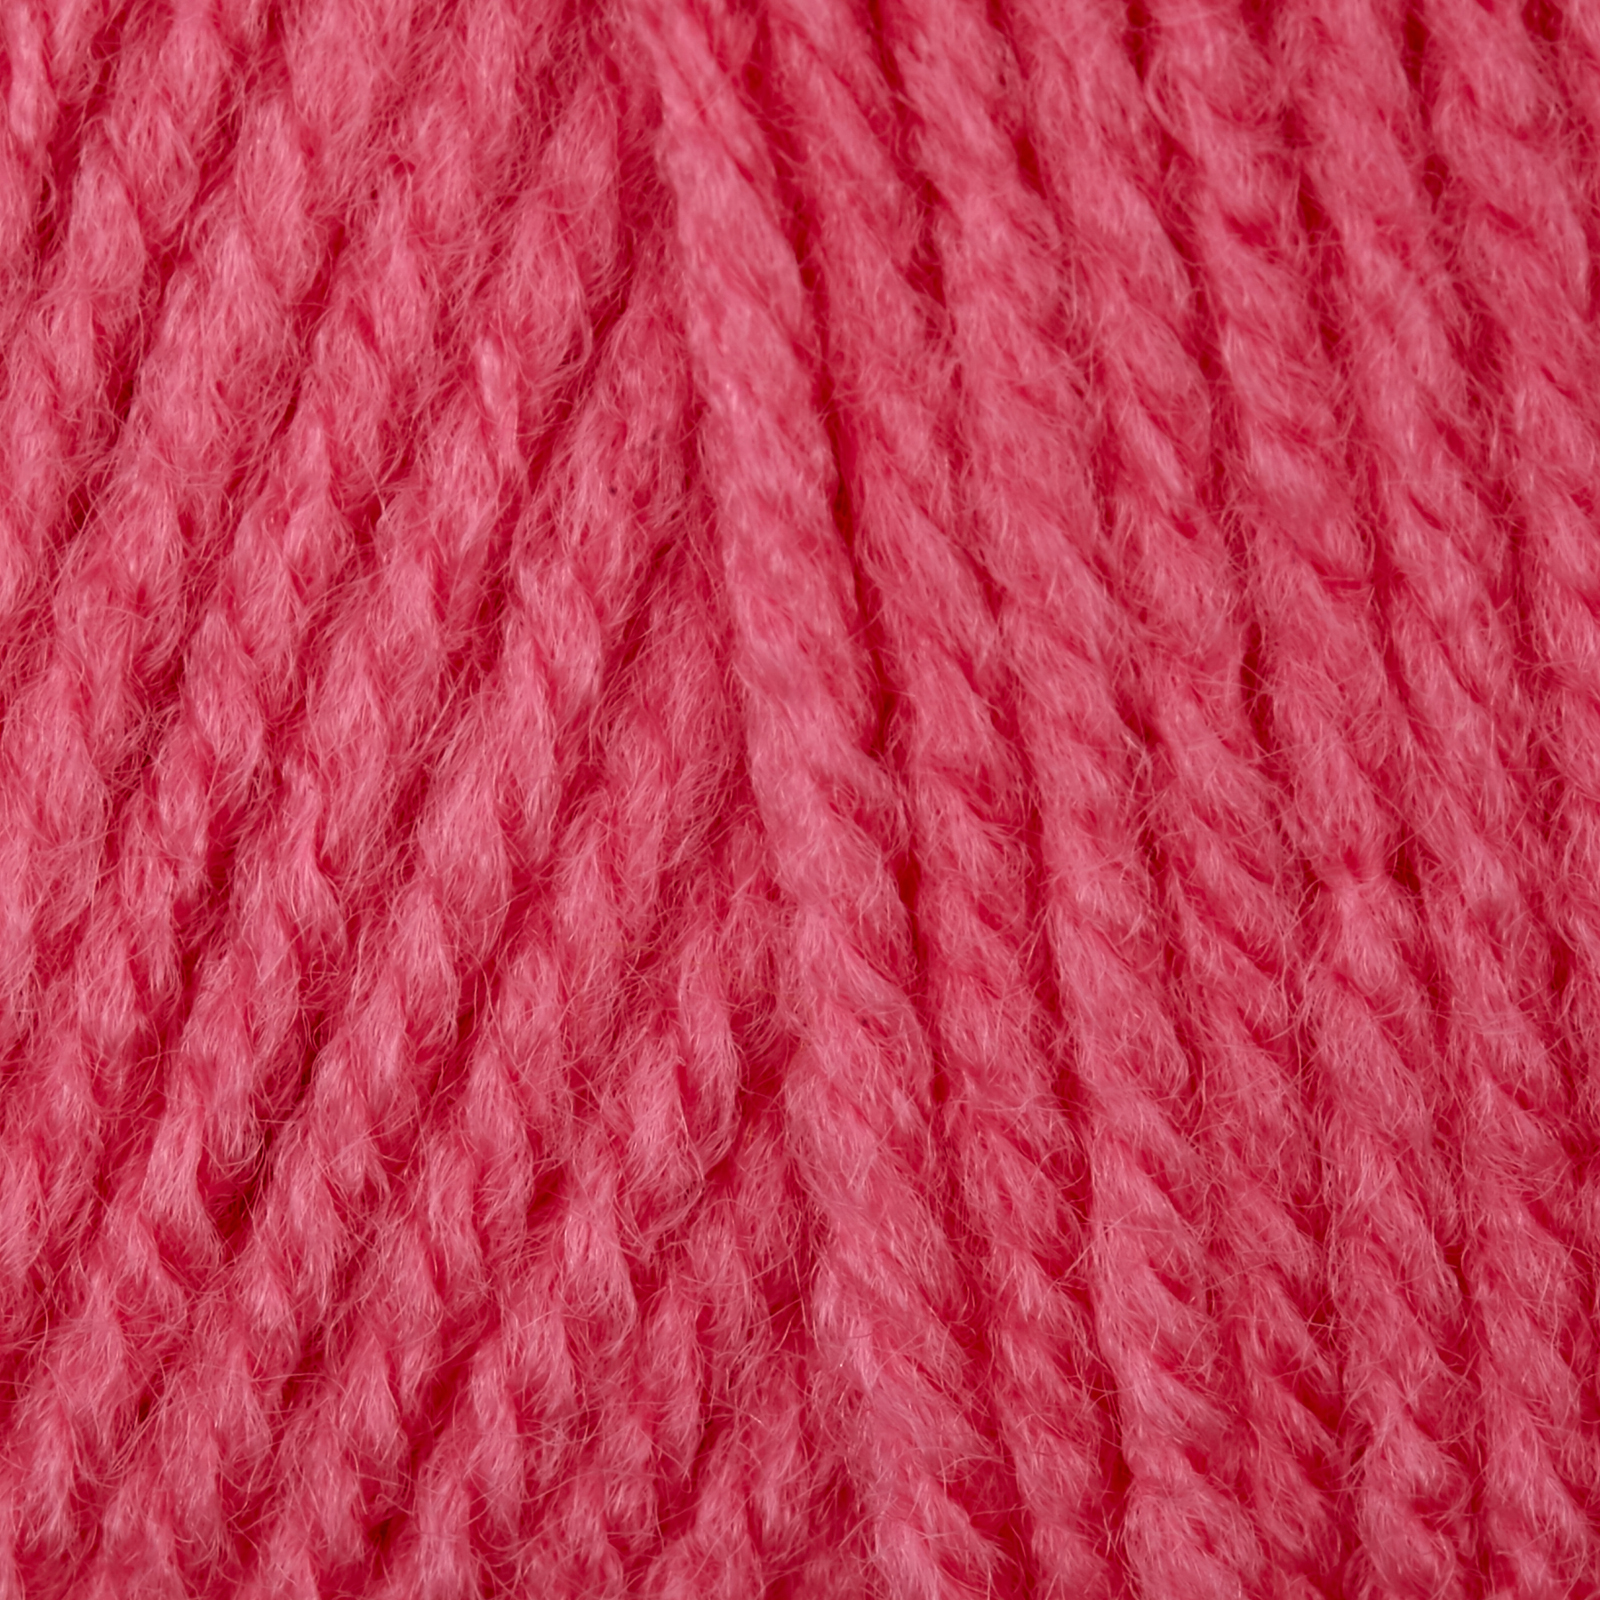 Red Heart Super Saver Jumbo Perfect Pink by Coats & Clark in USA